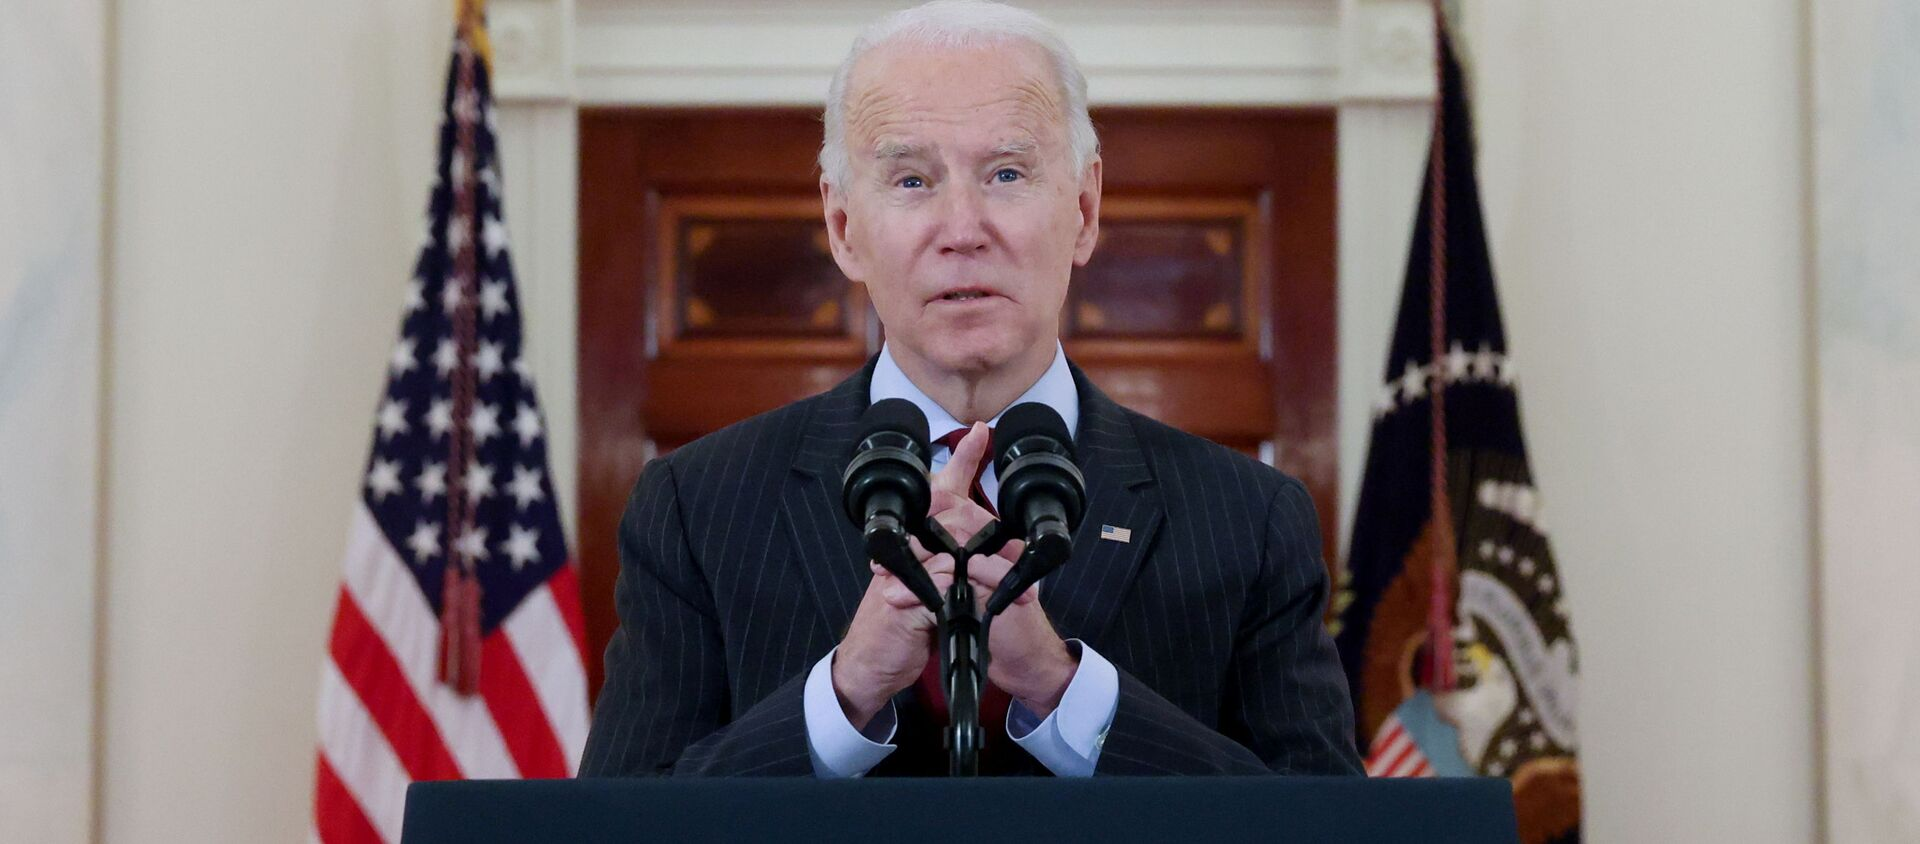 U.S. President Joe Biden delivers remarks in honor of the 500,000 U.S. deaths from the coronavirus disease (COVID-19), in the Cross Hall at the White House in Washington, U.S., February 22, 2021. - Sputnik International, 1920, 23.02.2021